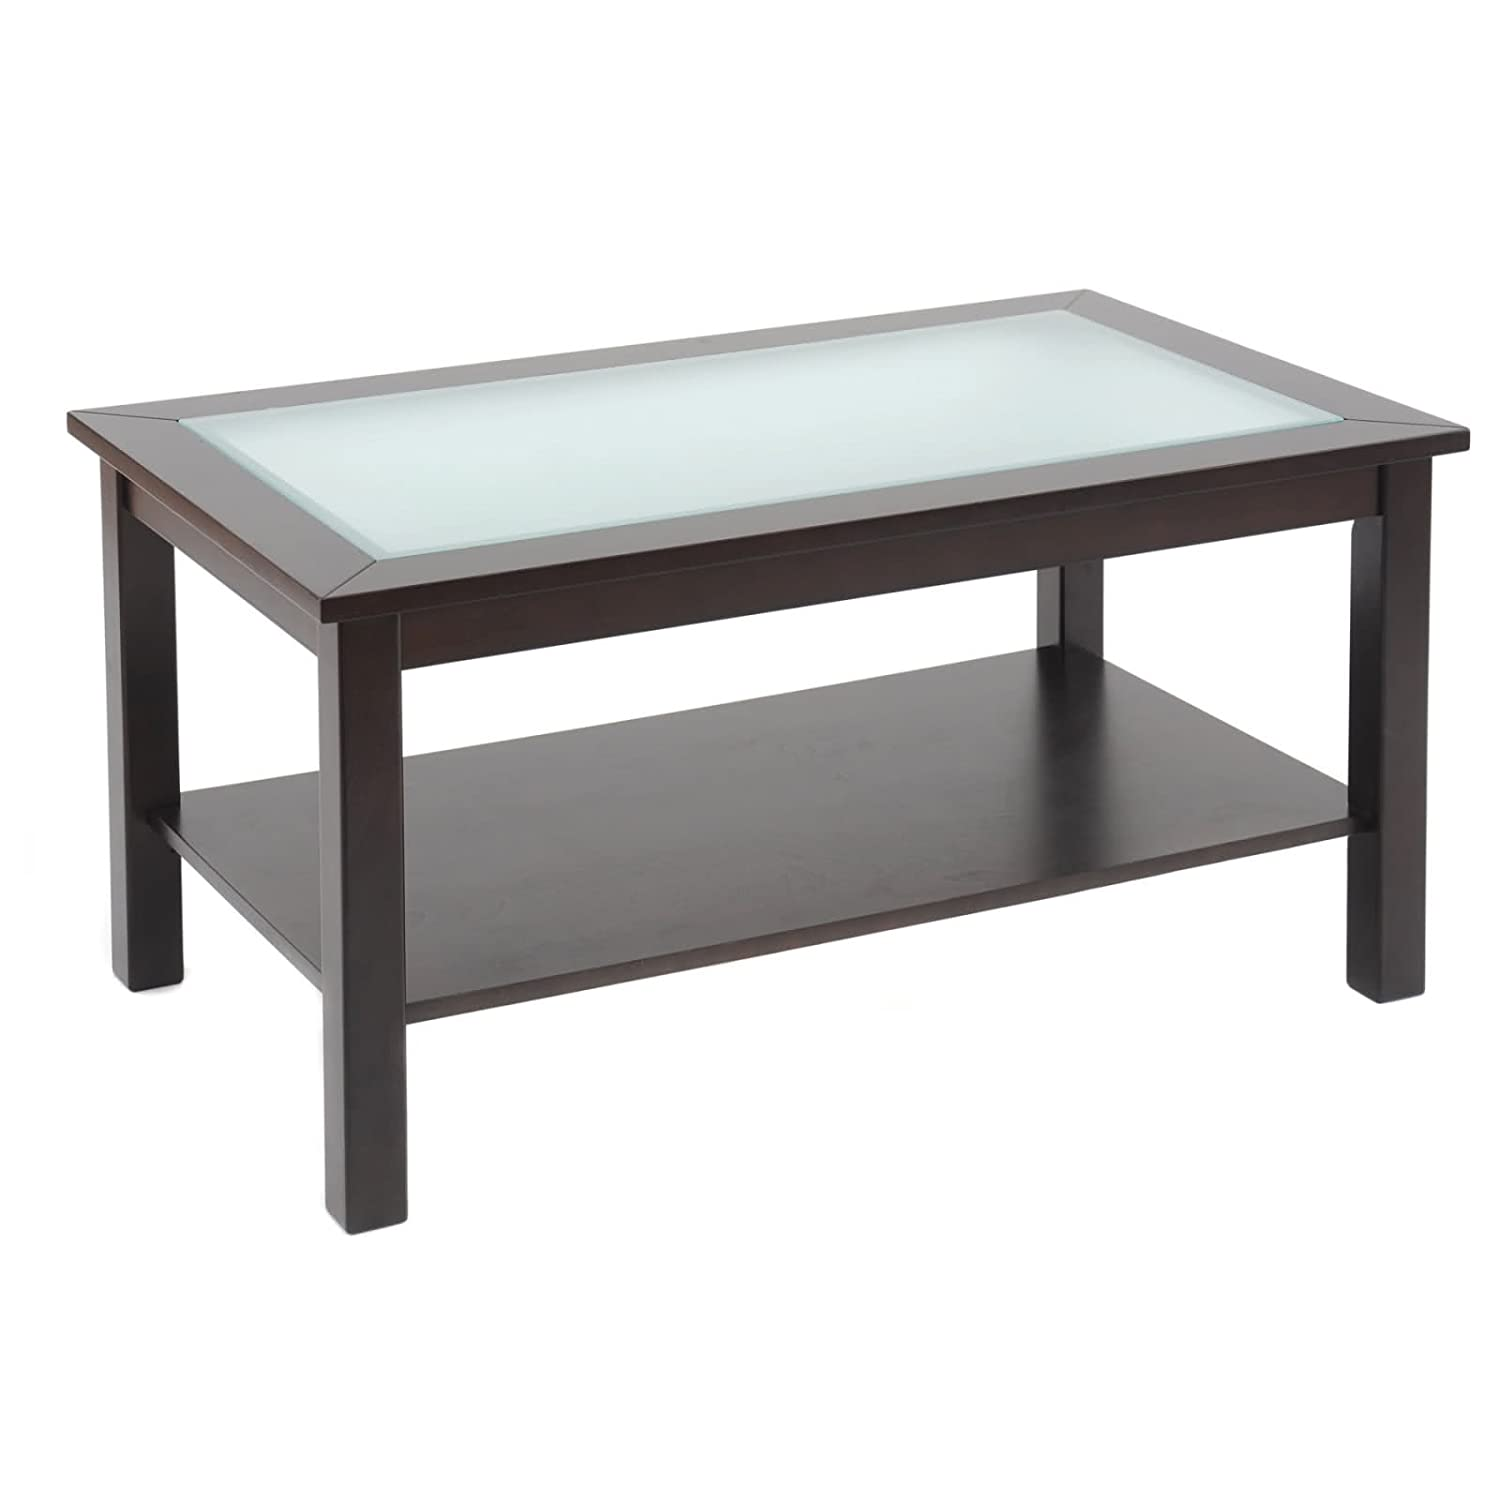 Amazon.com: Bay Shore Collection Coffee Table with Glass Insert Top and  Lower Shelf, Espresso: Kitchen & Dining - Amazon.com: Bay Shore Collection Coffee Table With Glass Insert